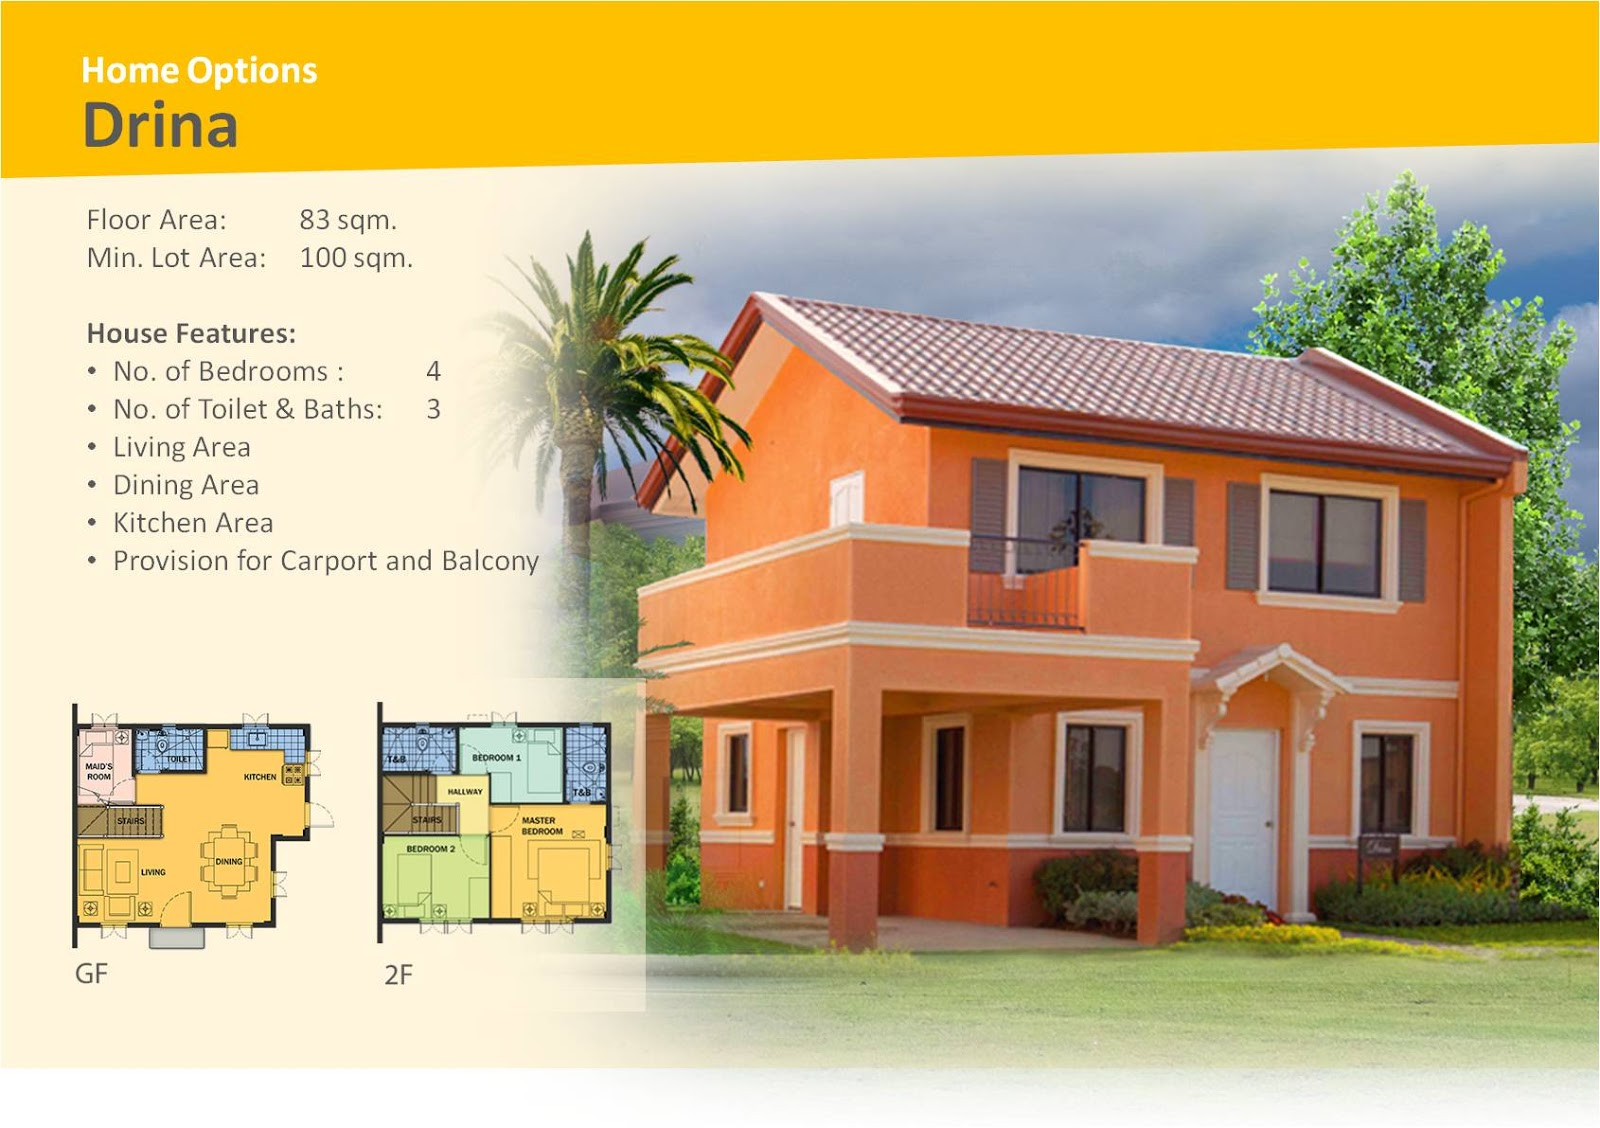 Camella silang tagaytay drina house and lot for sale in tagaytay city - Drina House Model Lot Area 100 Sqm Bigger Lot Sizes Available Floor Area 83 Sqm 13 Sqm For Balcony Bedrooms 4 Toilet Bath 3 Carport 1